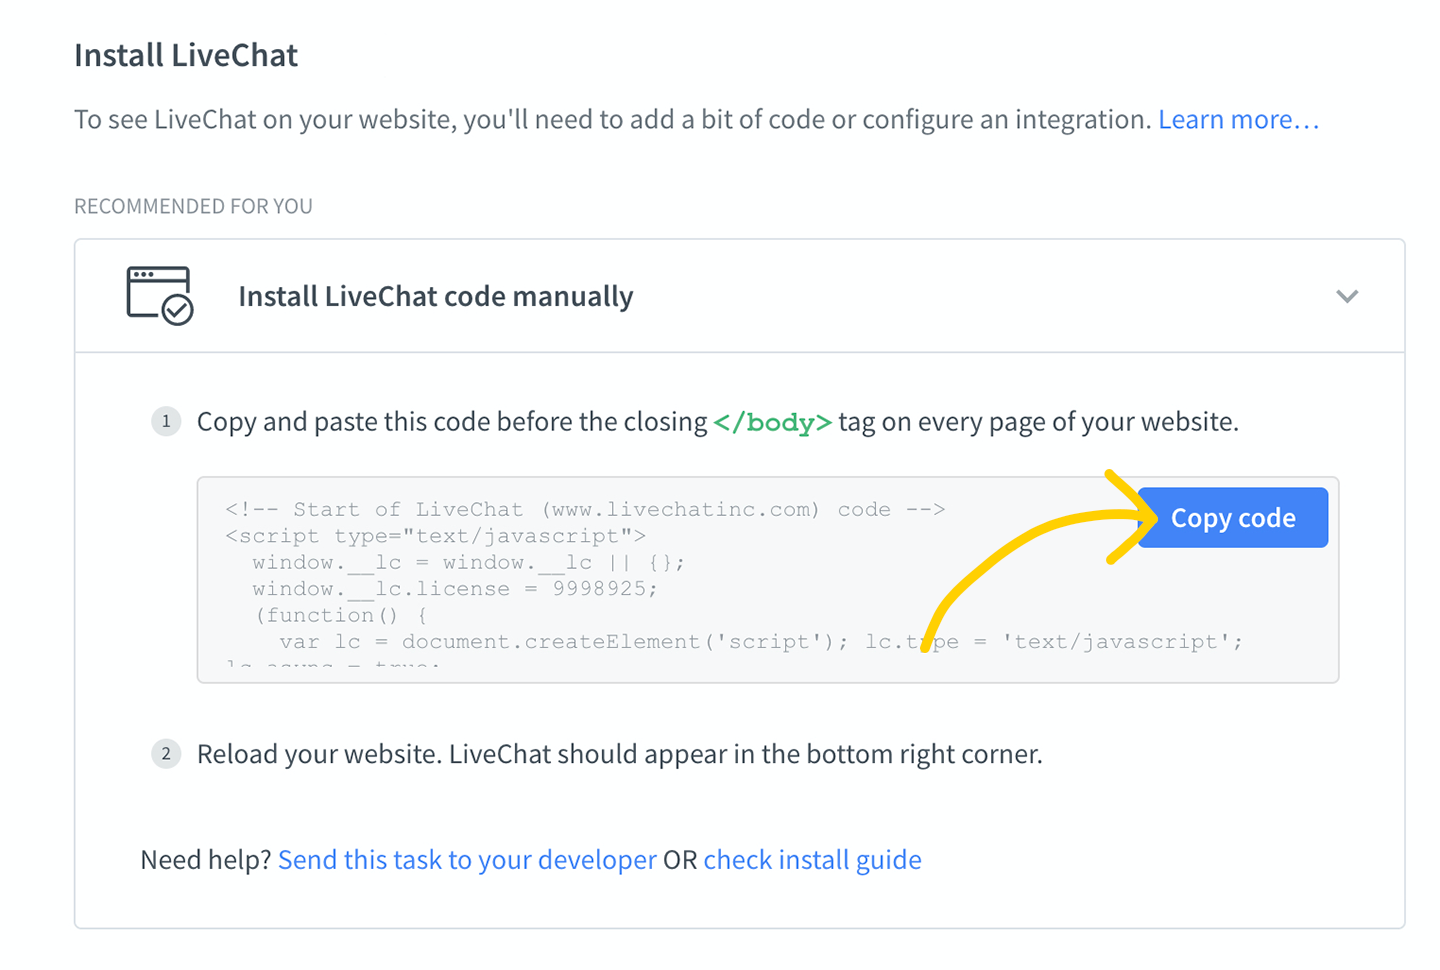 Livechat install code